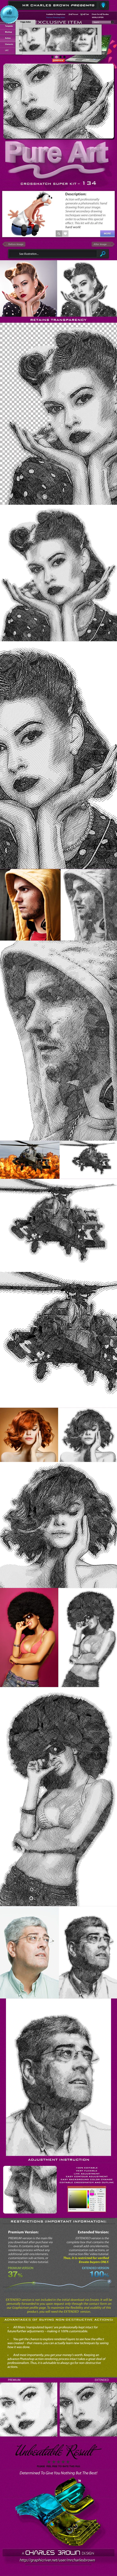 Pure Art Hand Drawing 134 – Crosshatch Super Kit #photoeffect Download: http://graphicriver.net/item/pure-art-hand-drawing-134-crosshatch-super-kit/11610071?ref=ksioks